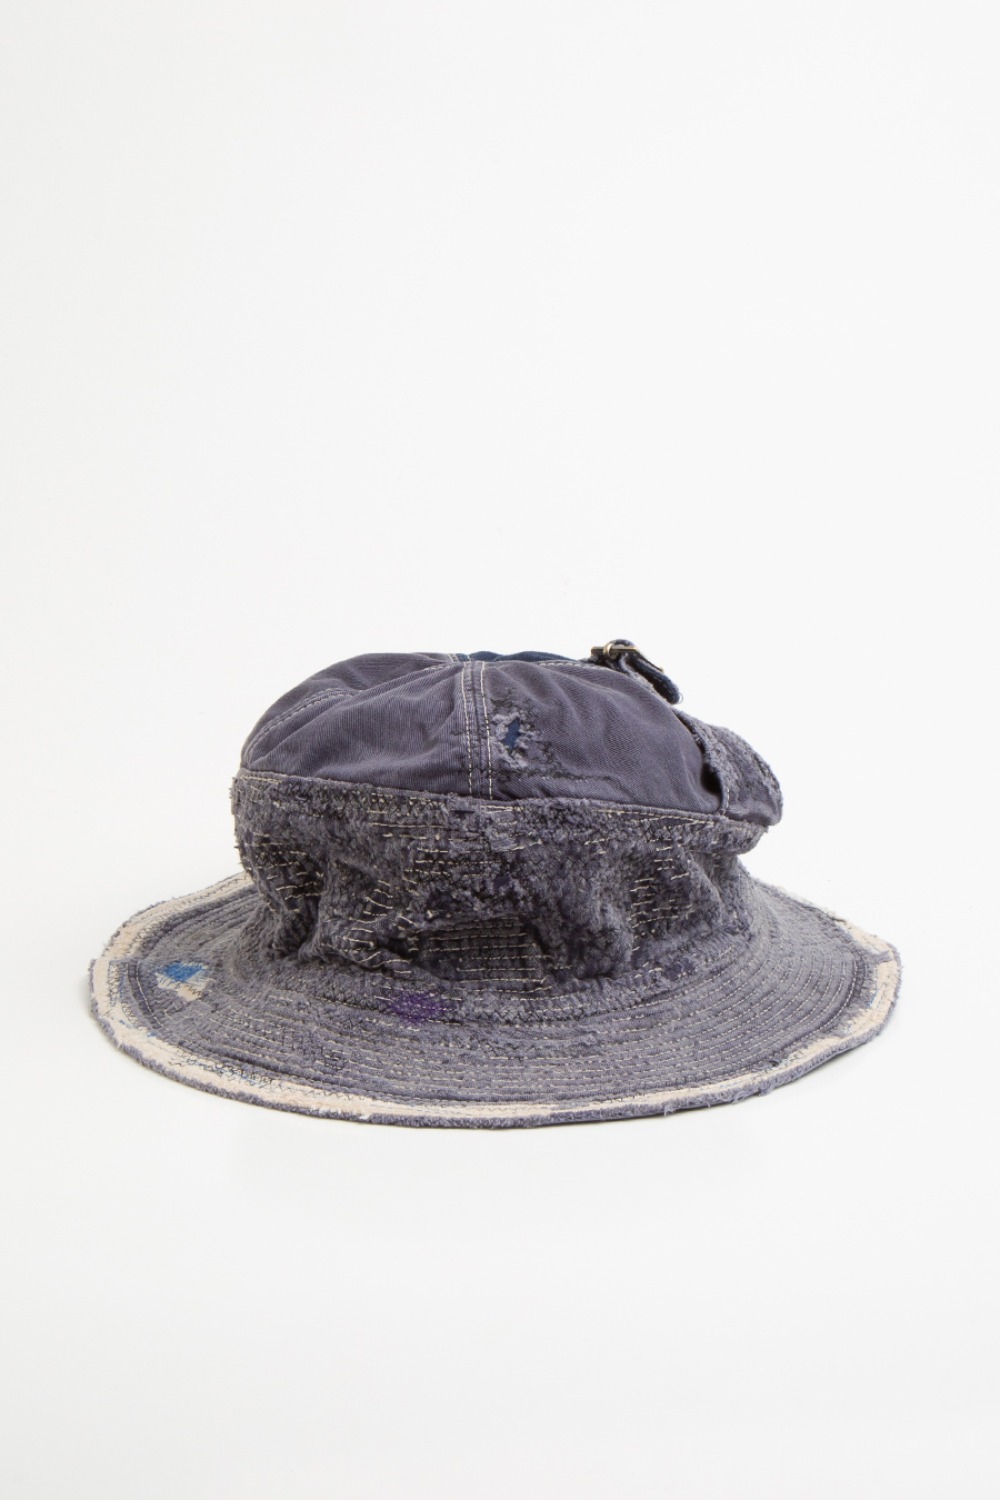 CHINO OLD MAN AND SEA HAT(CRASH REMAKE) NAVY